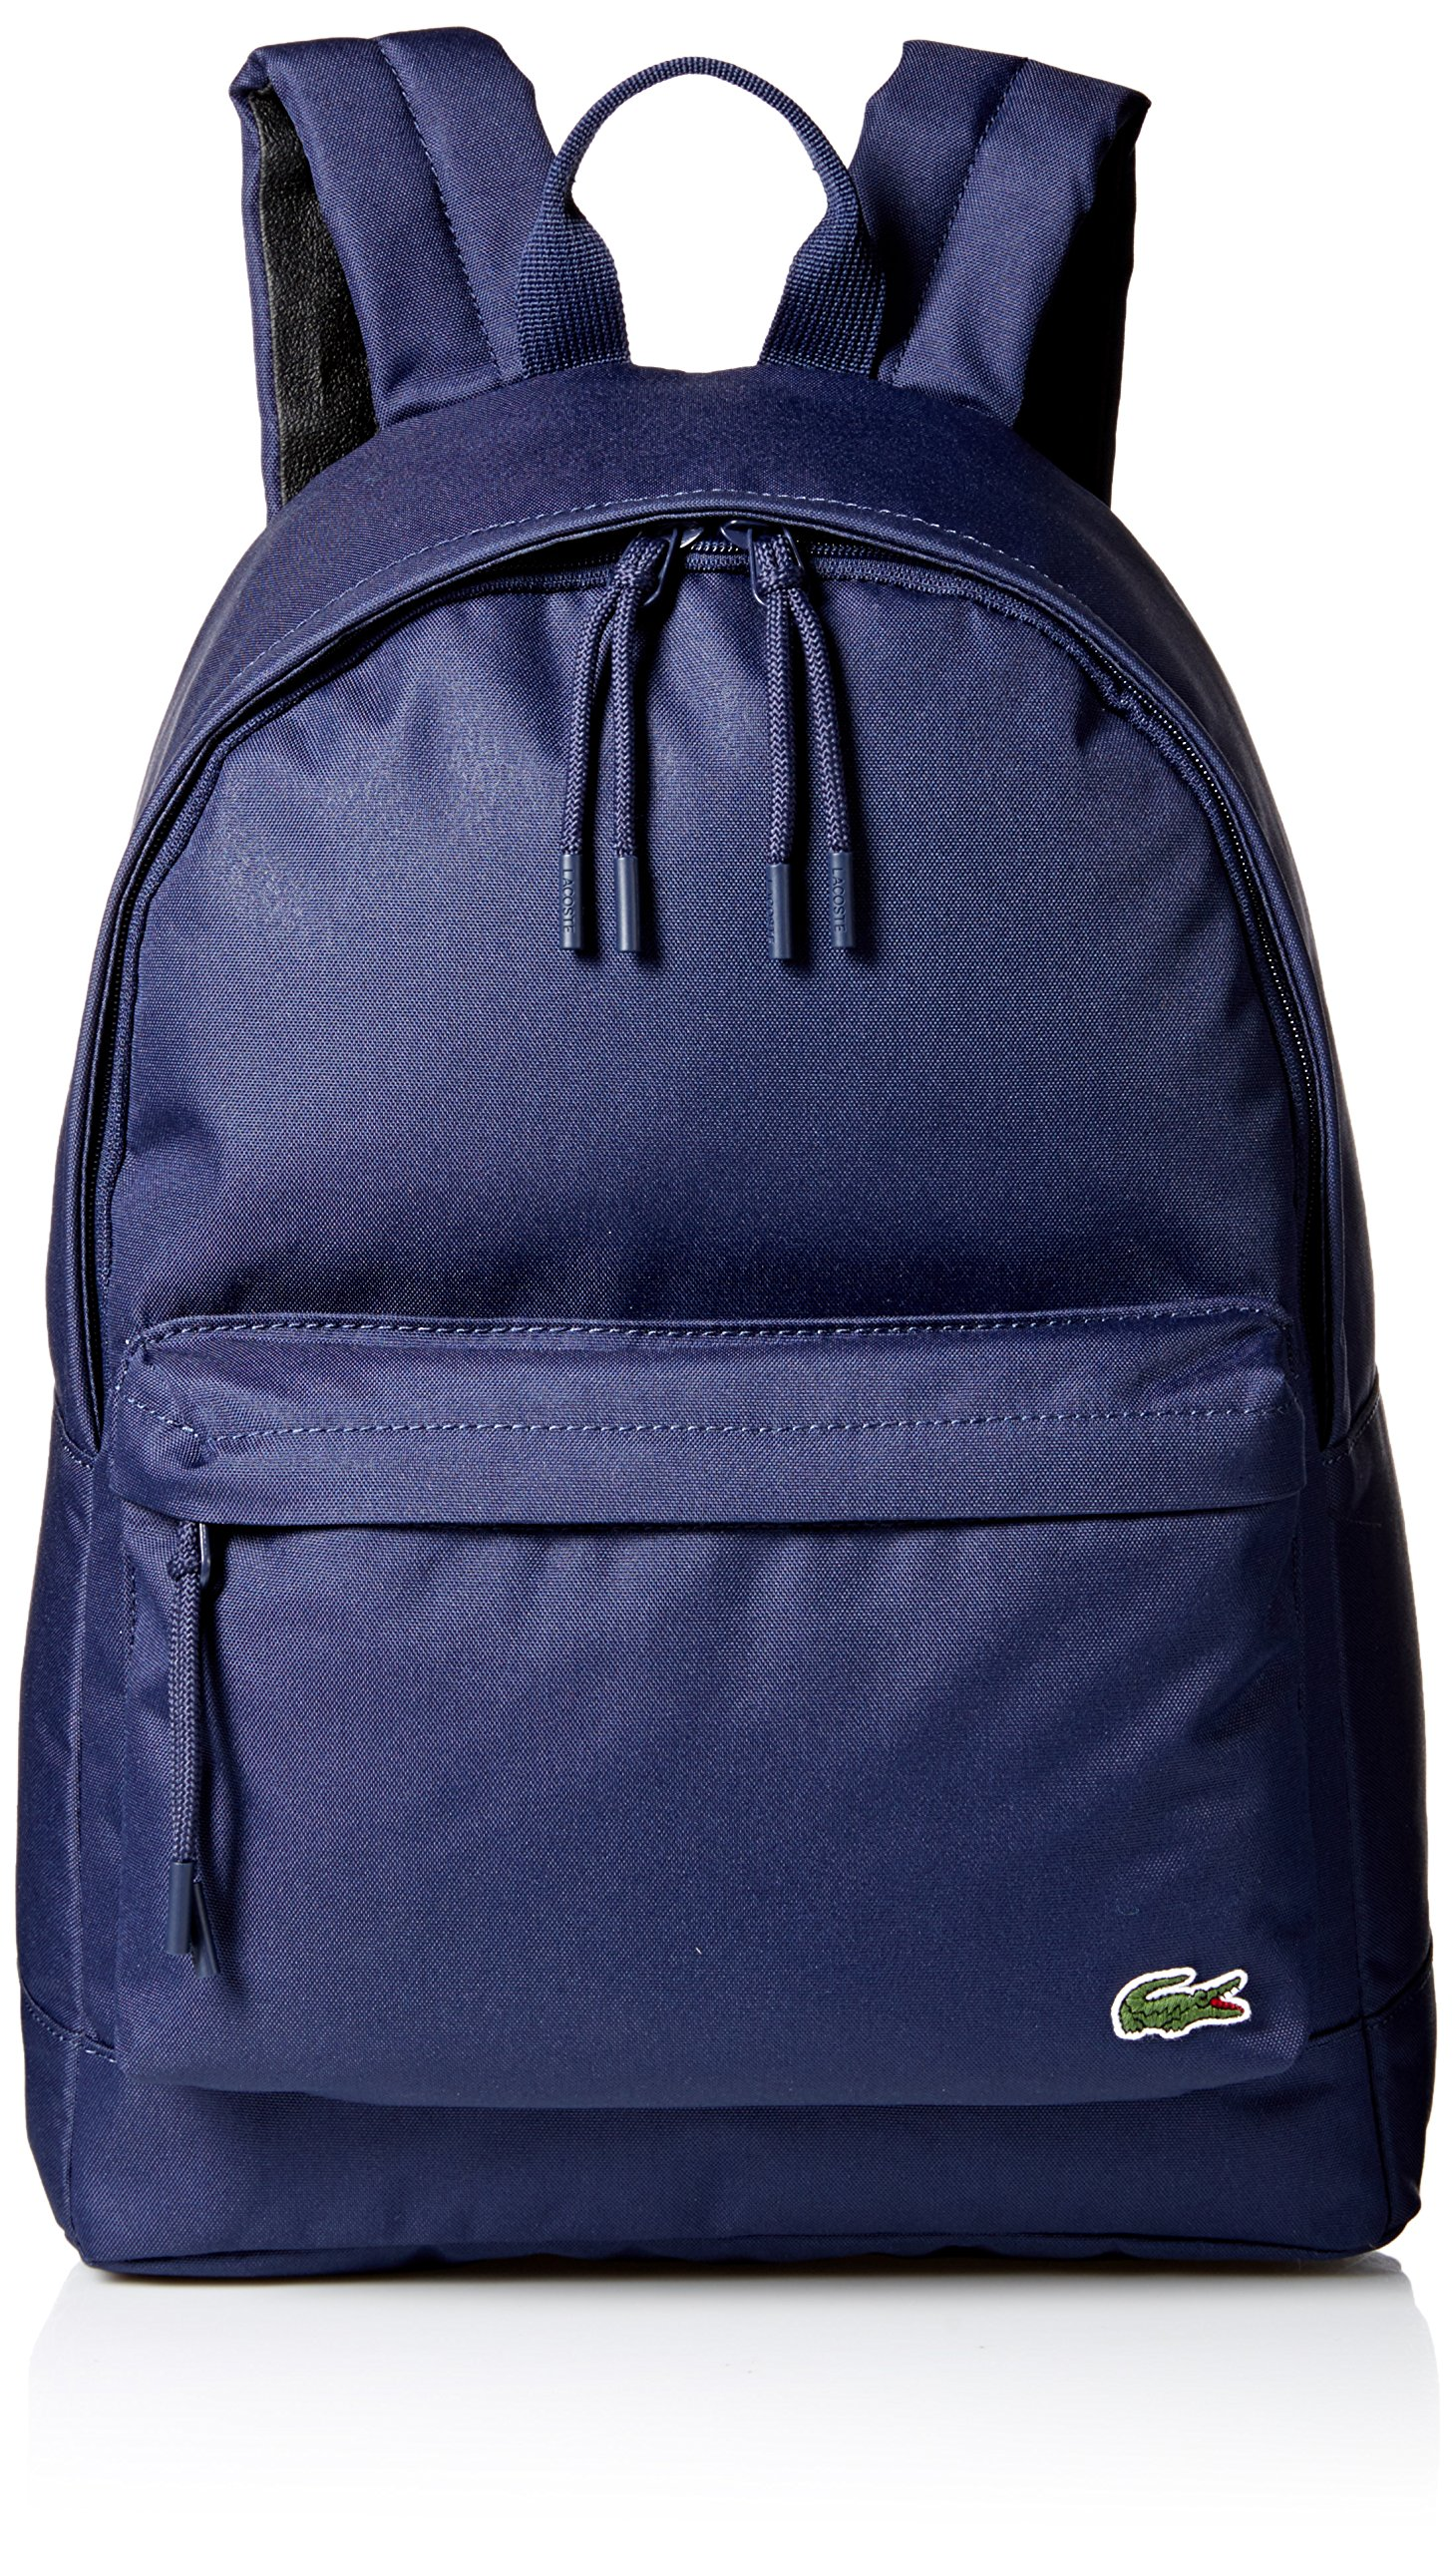 Lacoste Men's Neocroc Backpack, Peacoat by Lacoste (Image #1)